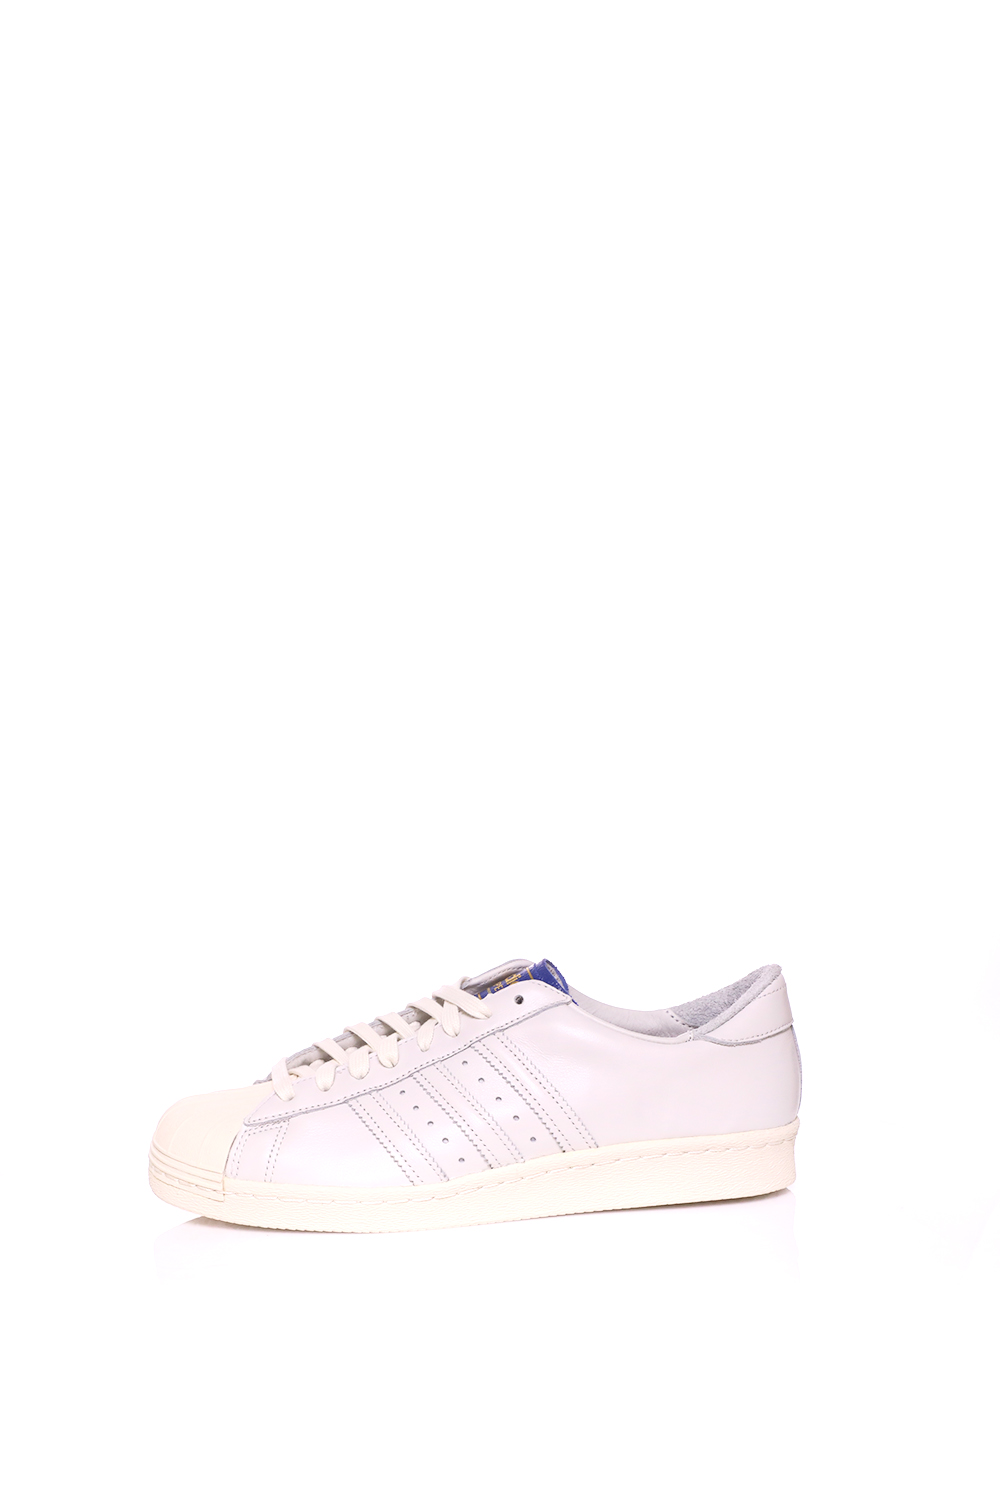 6c6782d1c8e Collective Online adidas Originals – Ανδρικά sneakers adidas SUPERSTAR BT  λευκά